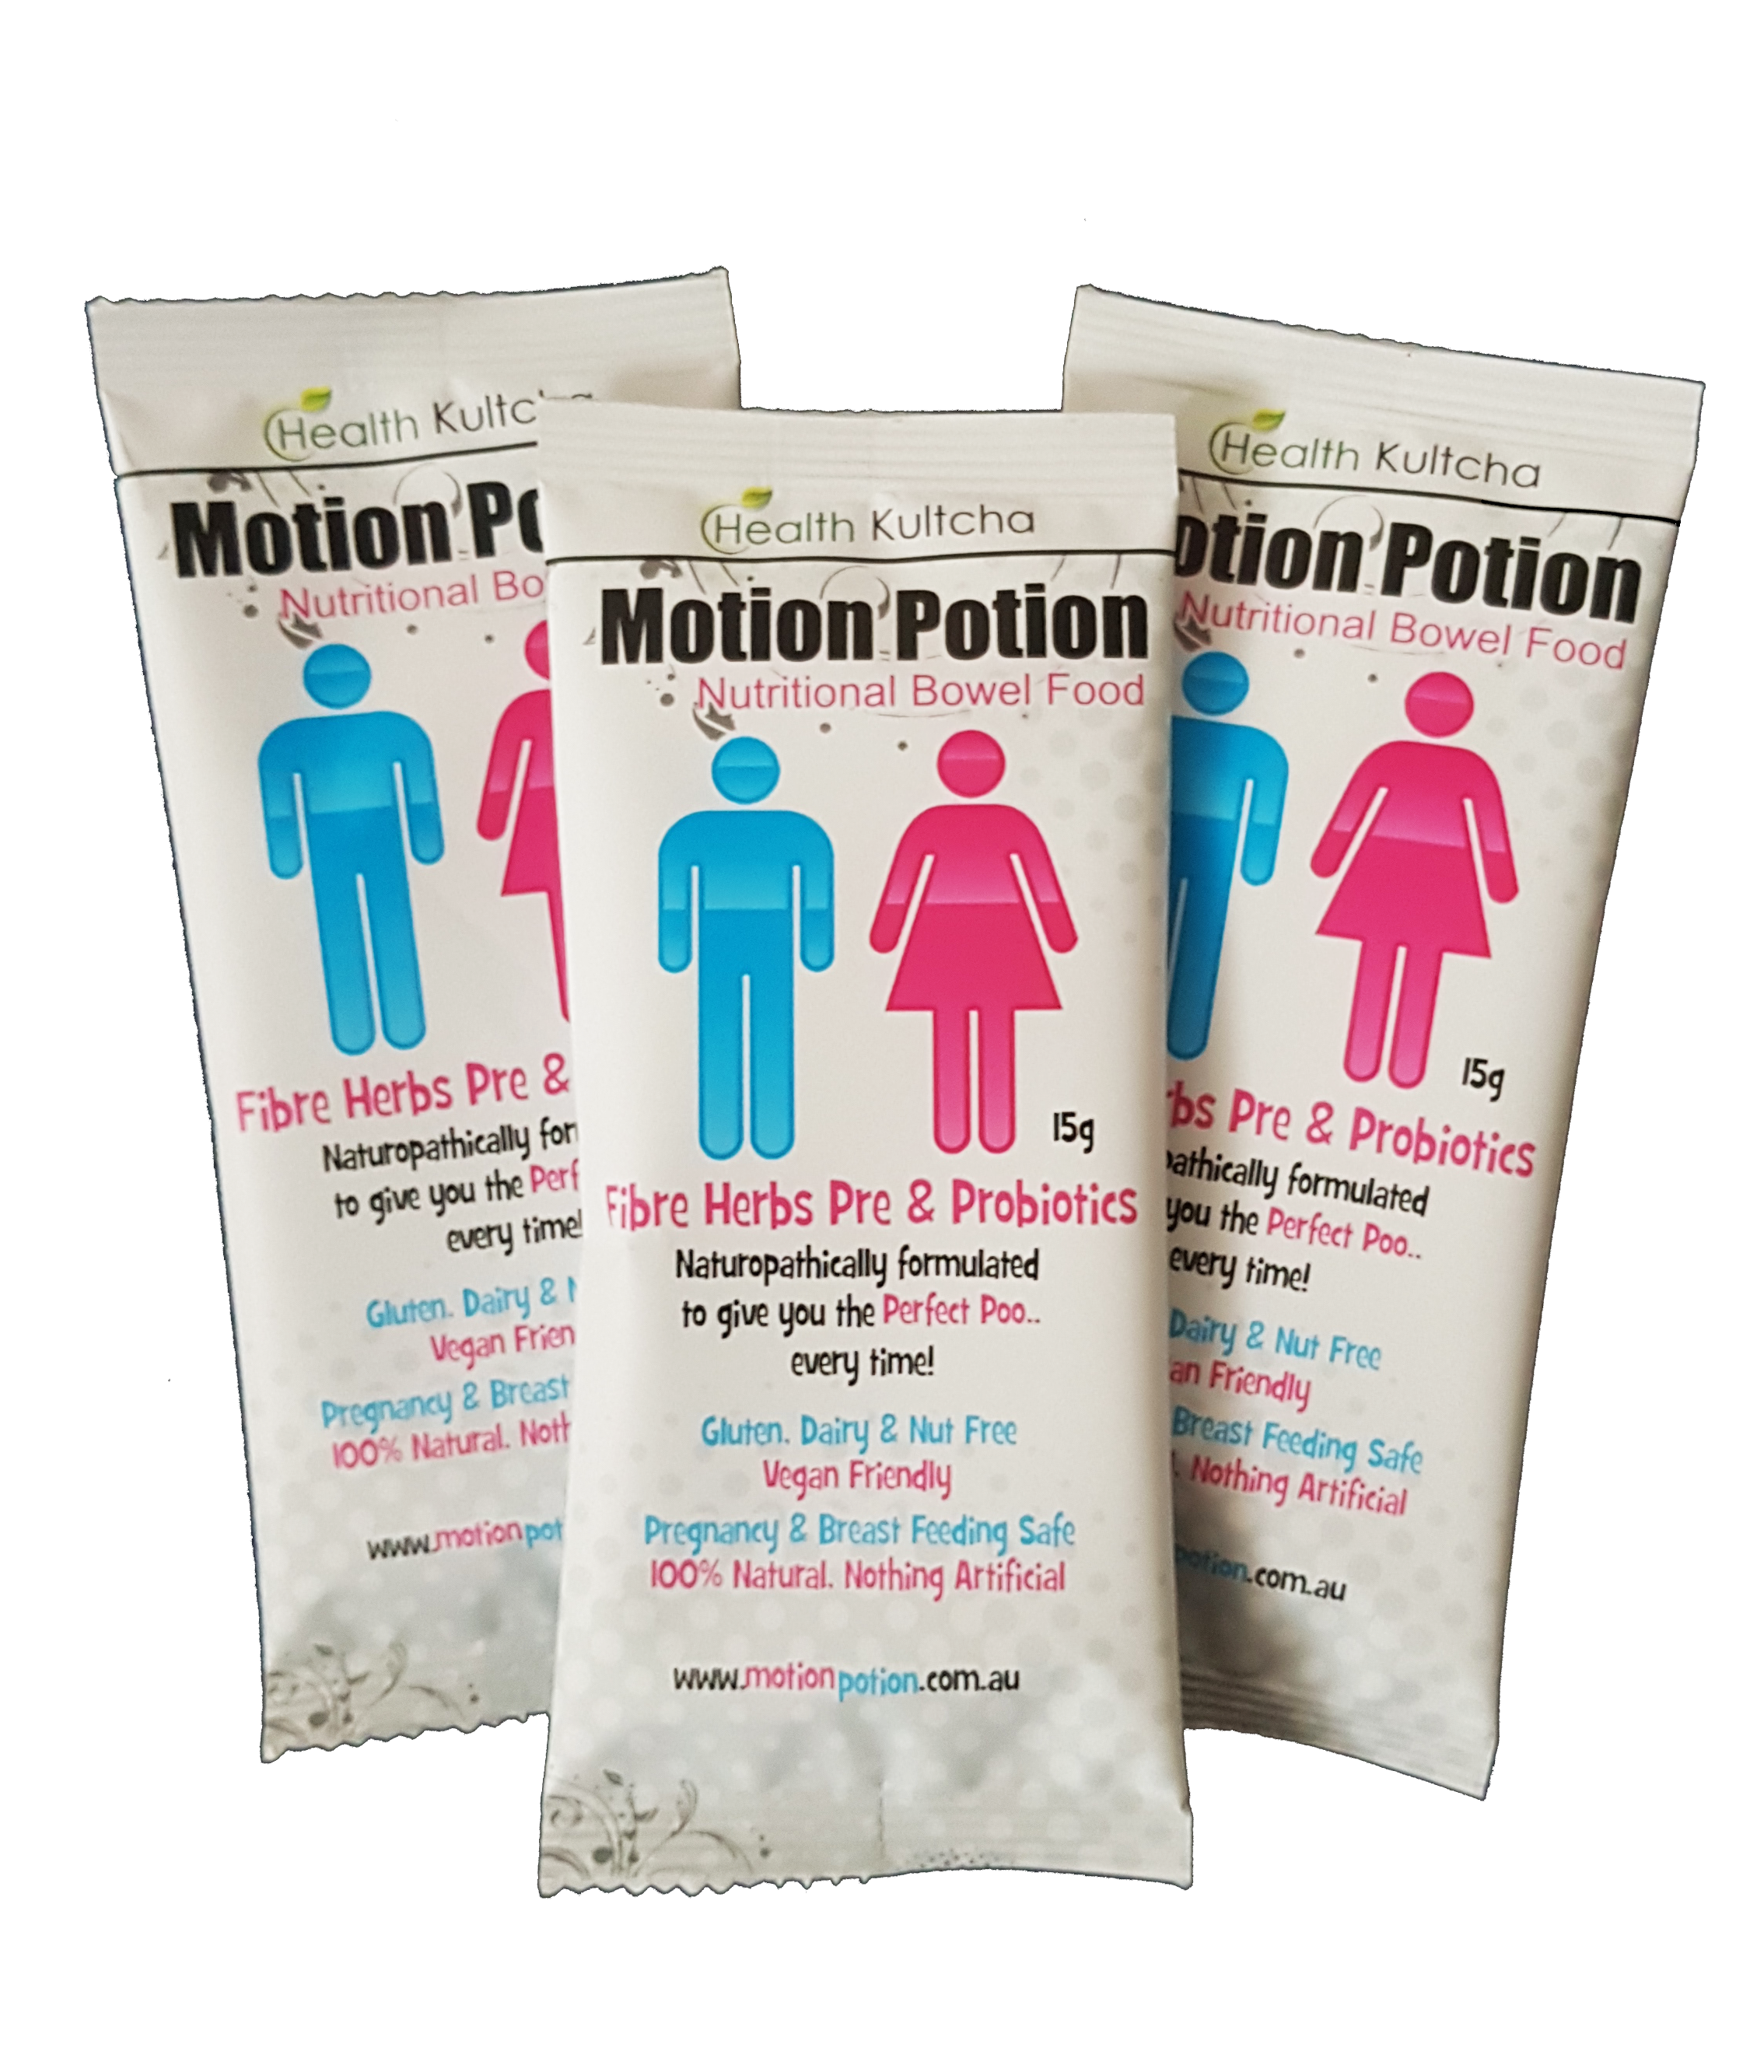 prebiotics and probiotics Motion Potion Nutritional bowel health supplements buy online at Yo Life